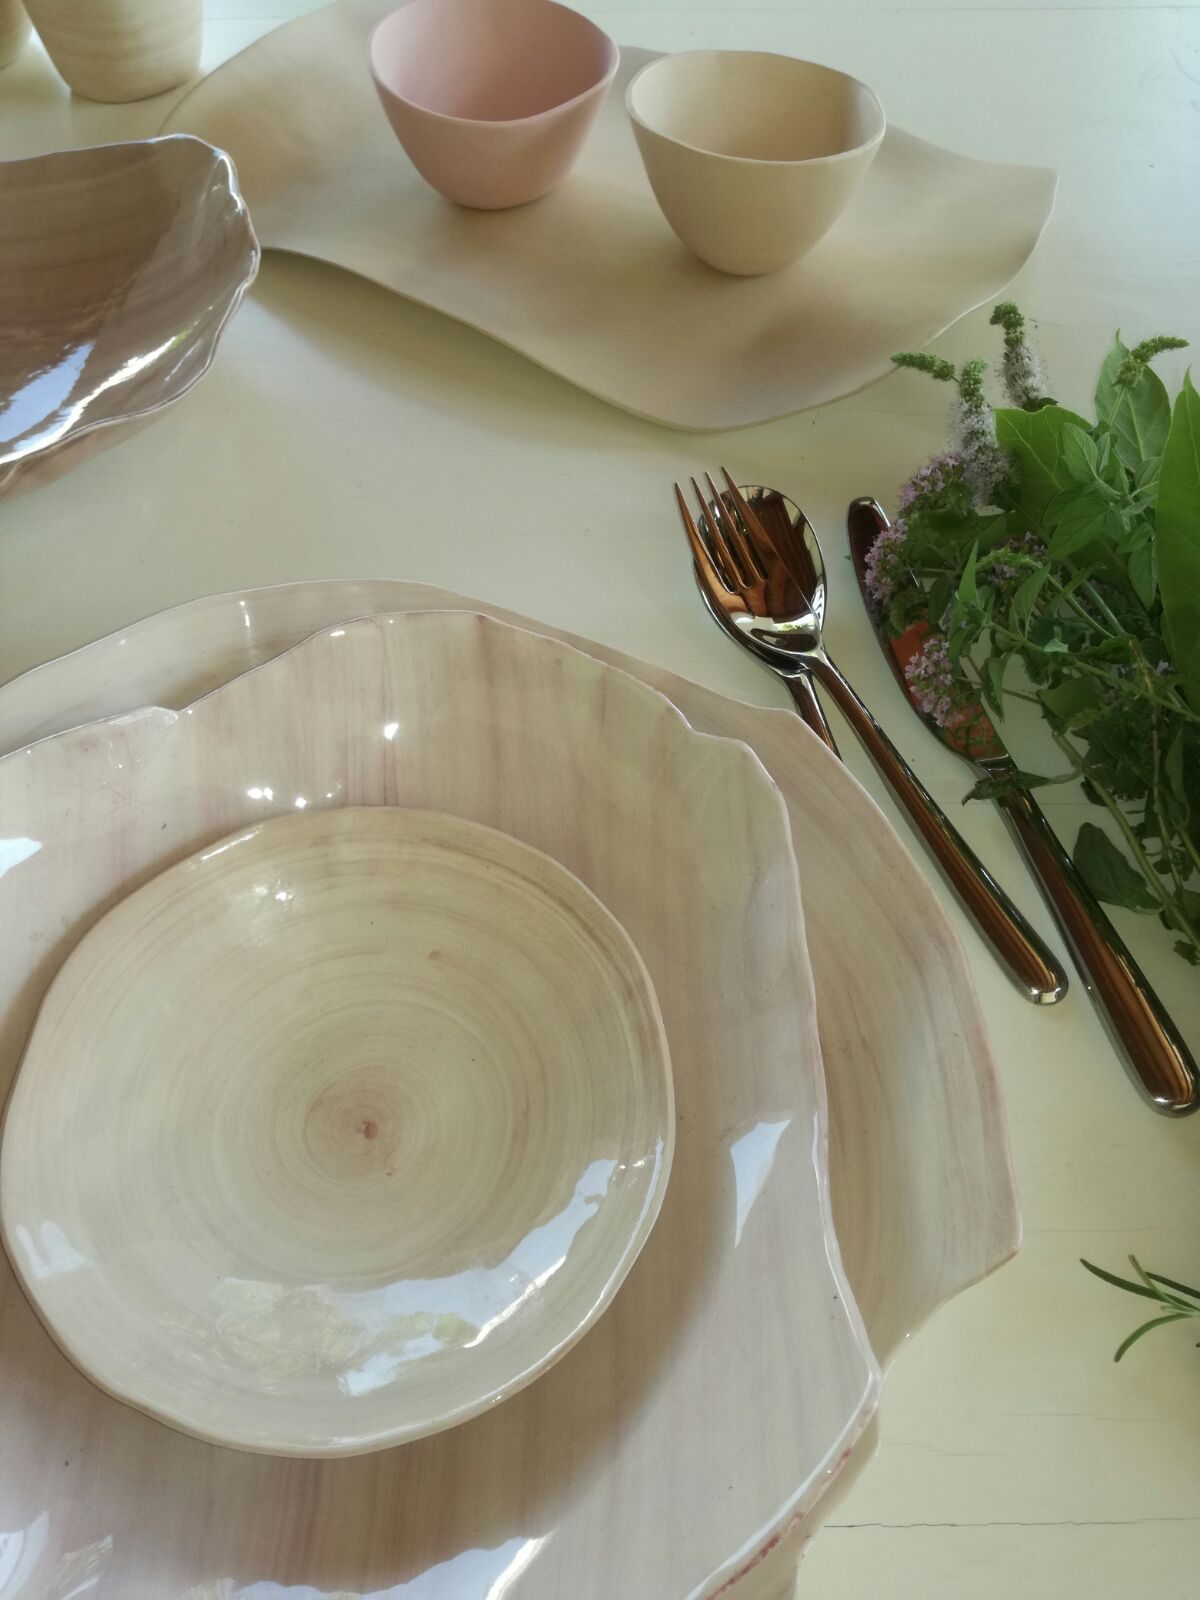 Unique and original creations, with delicate tones and essential shapes, give life to a production of ceramic to wear with elegant simplicity. #contemporary #jewelry #ceramic #handmade #madeinitaly #design #table #diningset